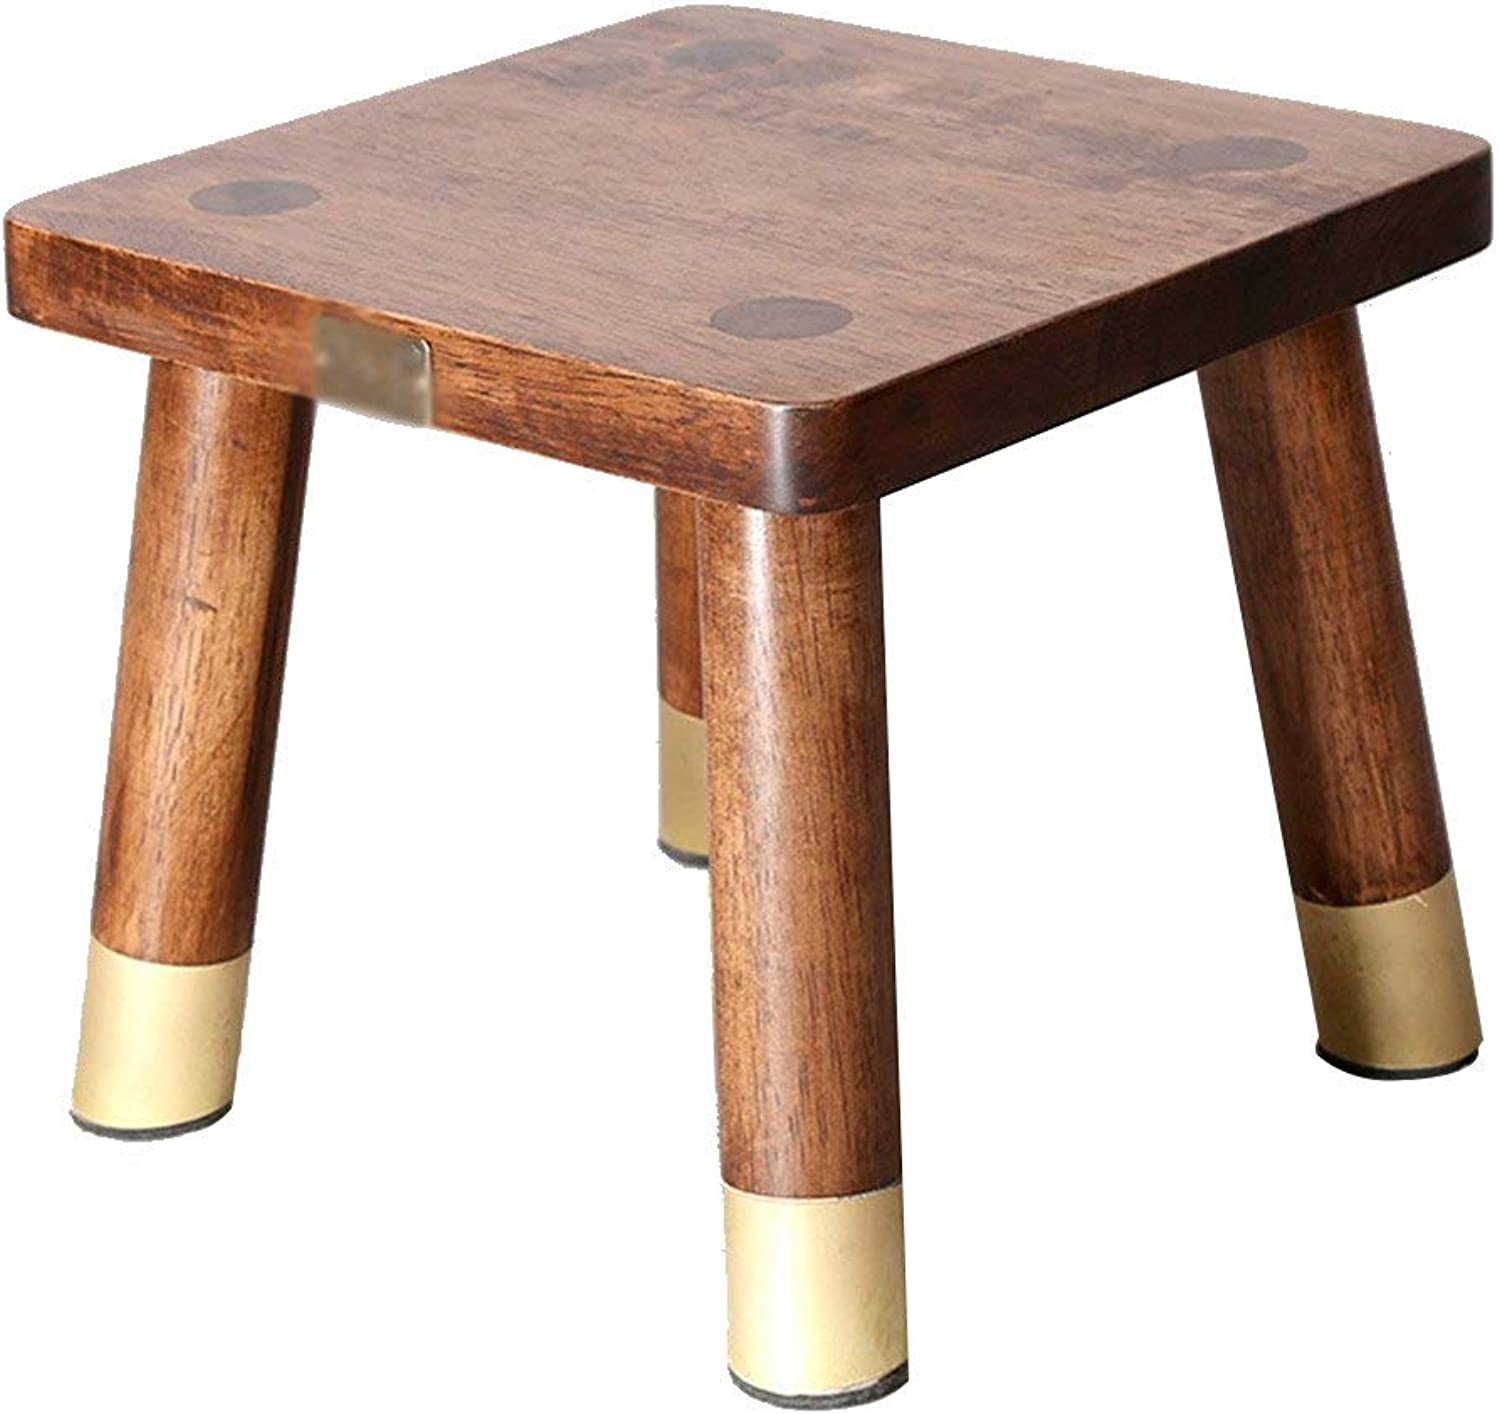 GJD Household Wood Stool, Change shoes Bench Square Stool Bathroom Stool Wooden Chair Foot Stool 26  26  23cm